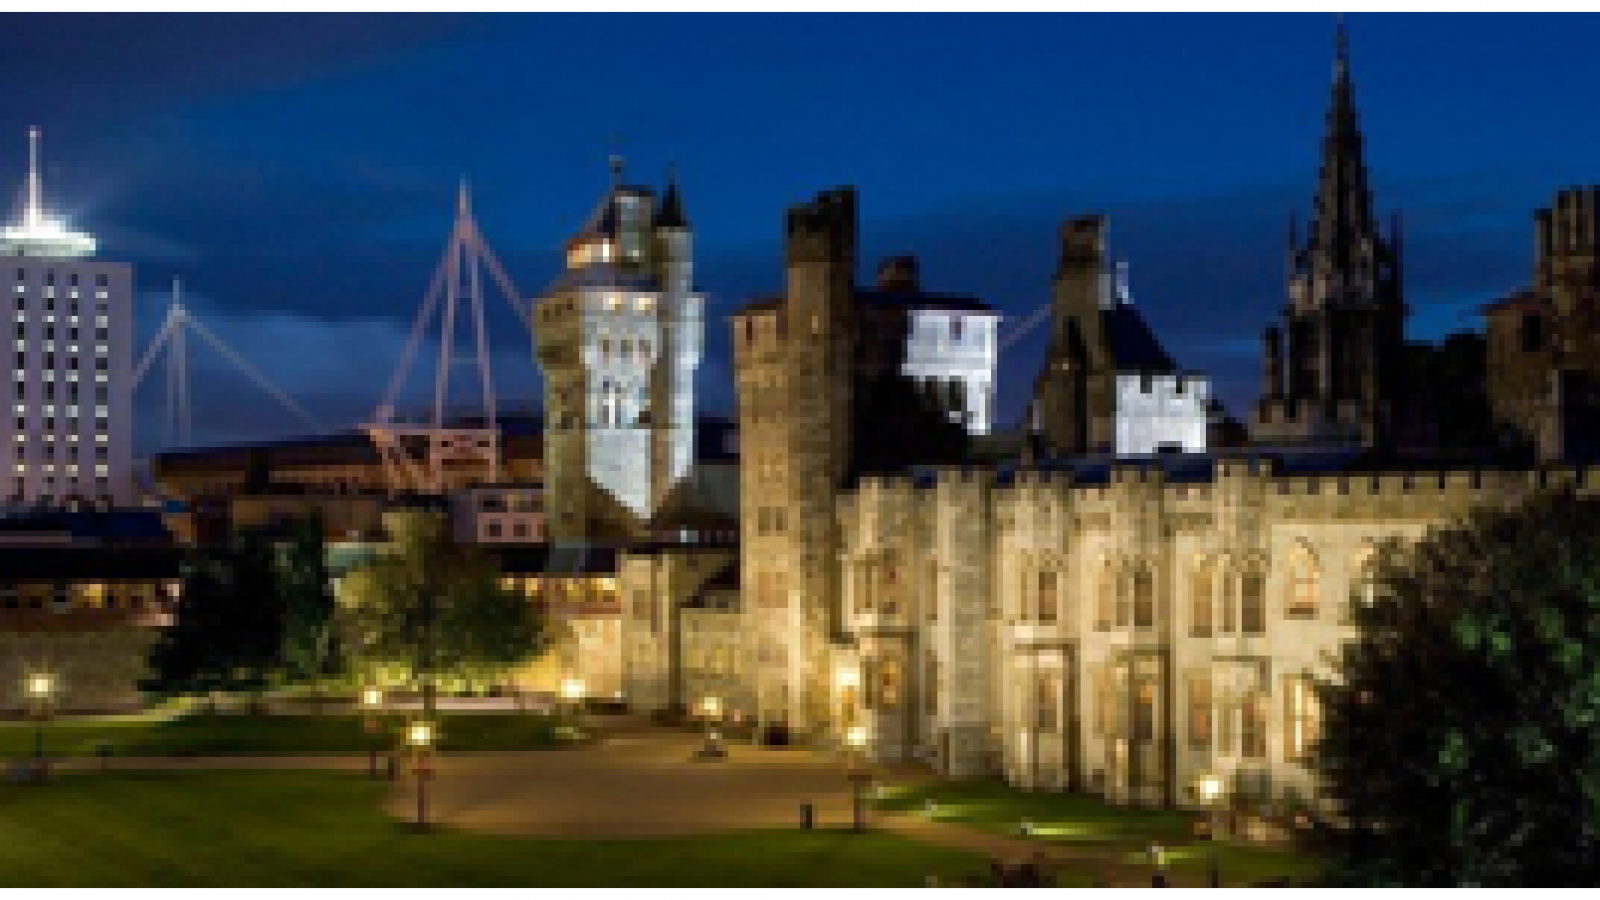 Cardiff Castle. The fortress and the Gothic house